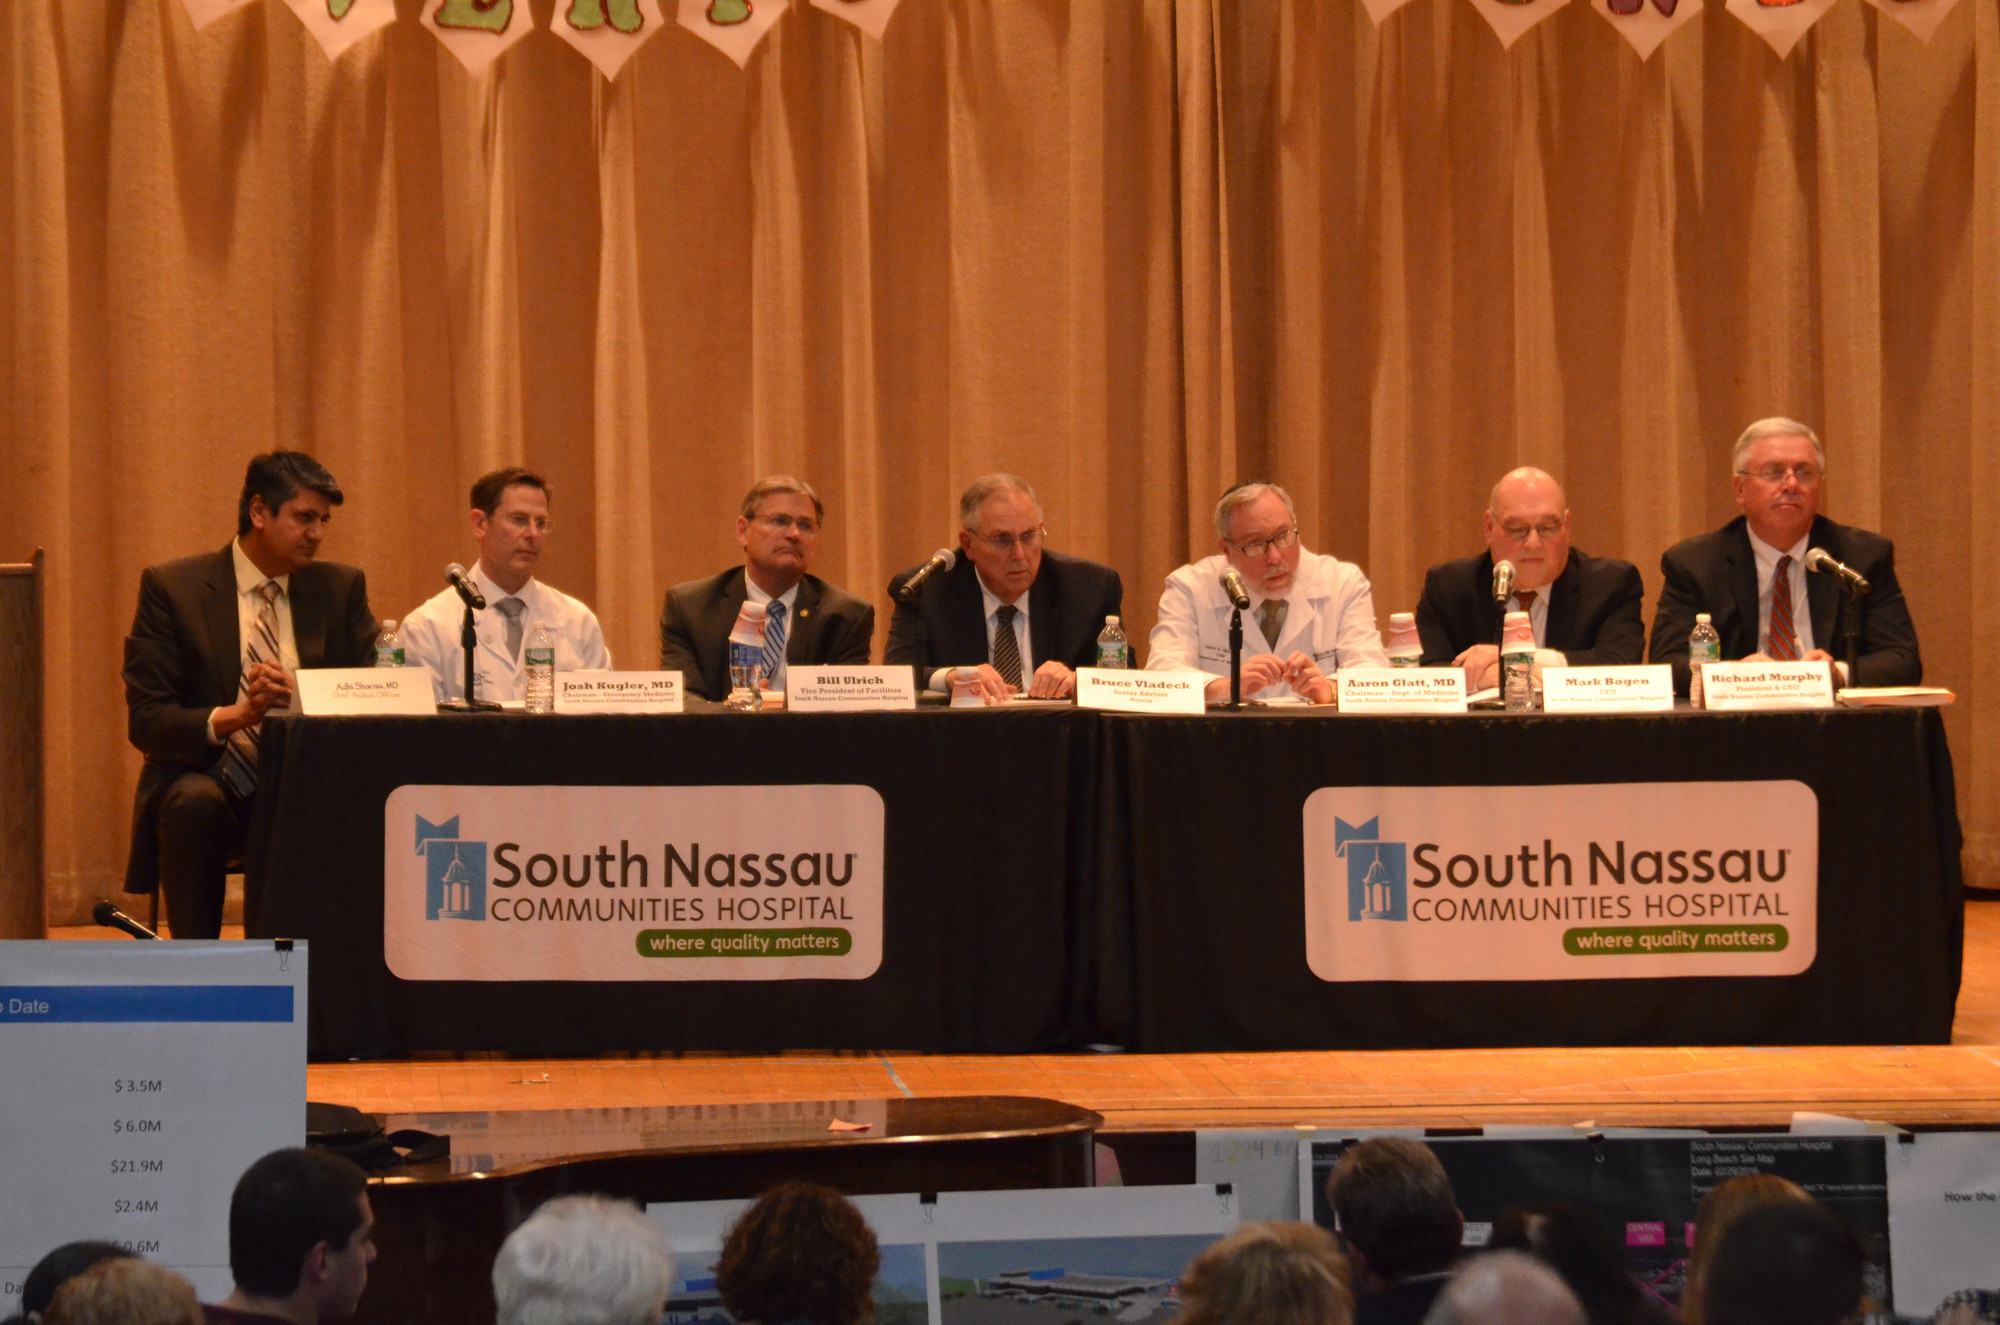 South Nassau Communities Hospital representatives presented the results of a study that concluded that a full-service hospital with 50 beds would lose more than $10 million per year.